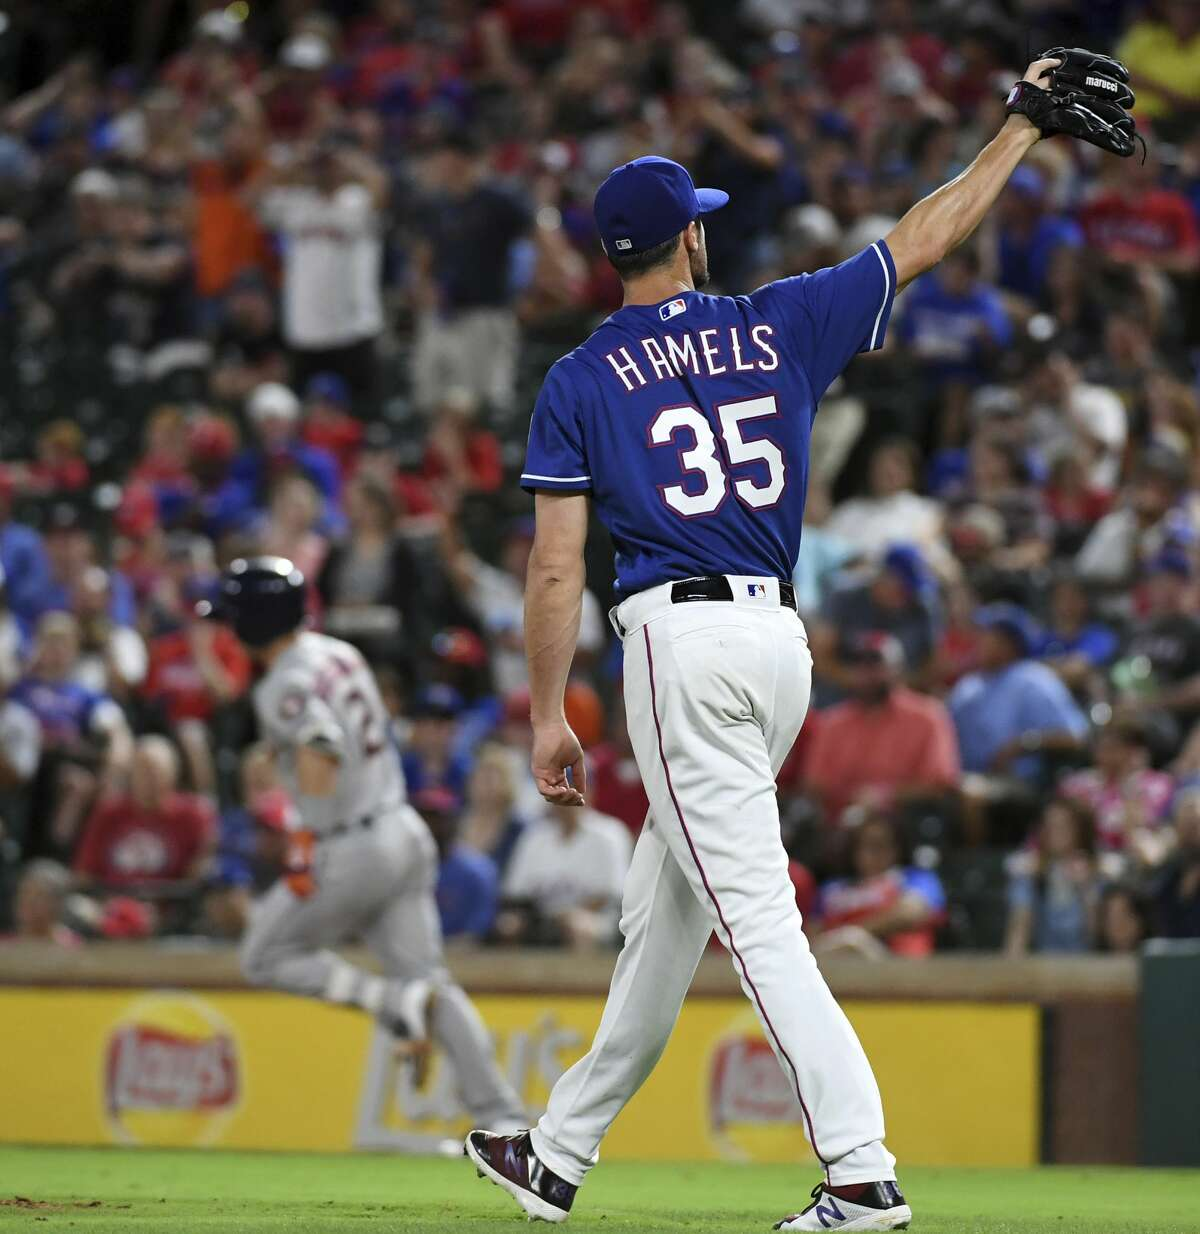 Texas Rangers starting pitcher Cole Hamels receives a new ball as Houston Astros' Alex Bregman rounds the bases on a solo home run during the eighth inning of a baseball game Thursday, June 7, 2018, in Arlington, Texas. Houston won 5-2. (AP Photo/Jeffrey McWhorter)